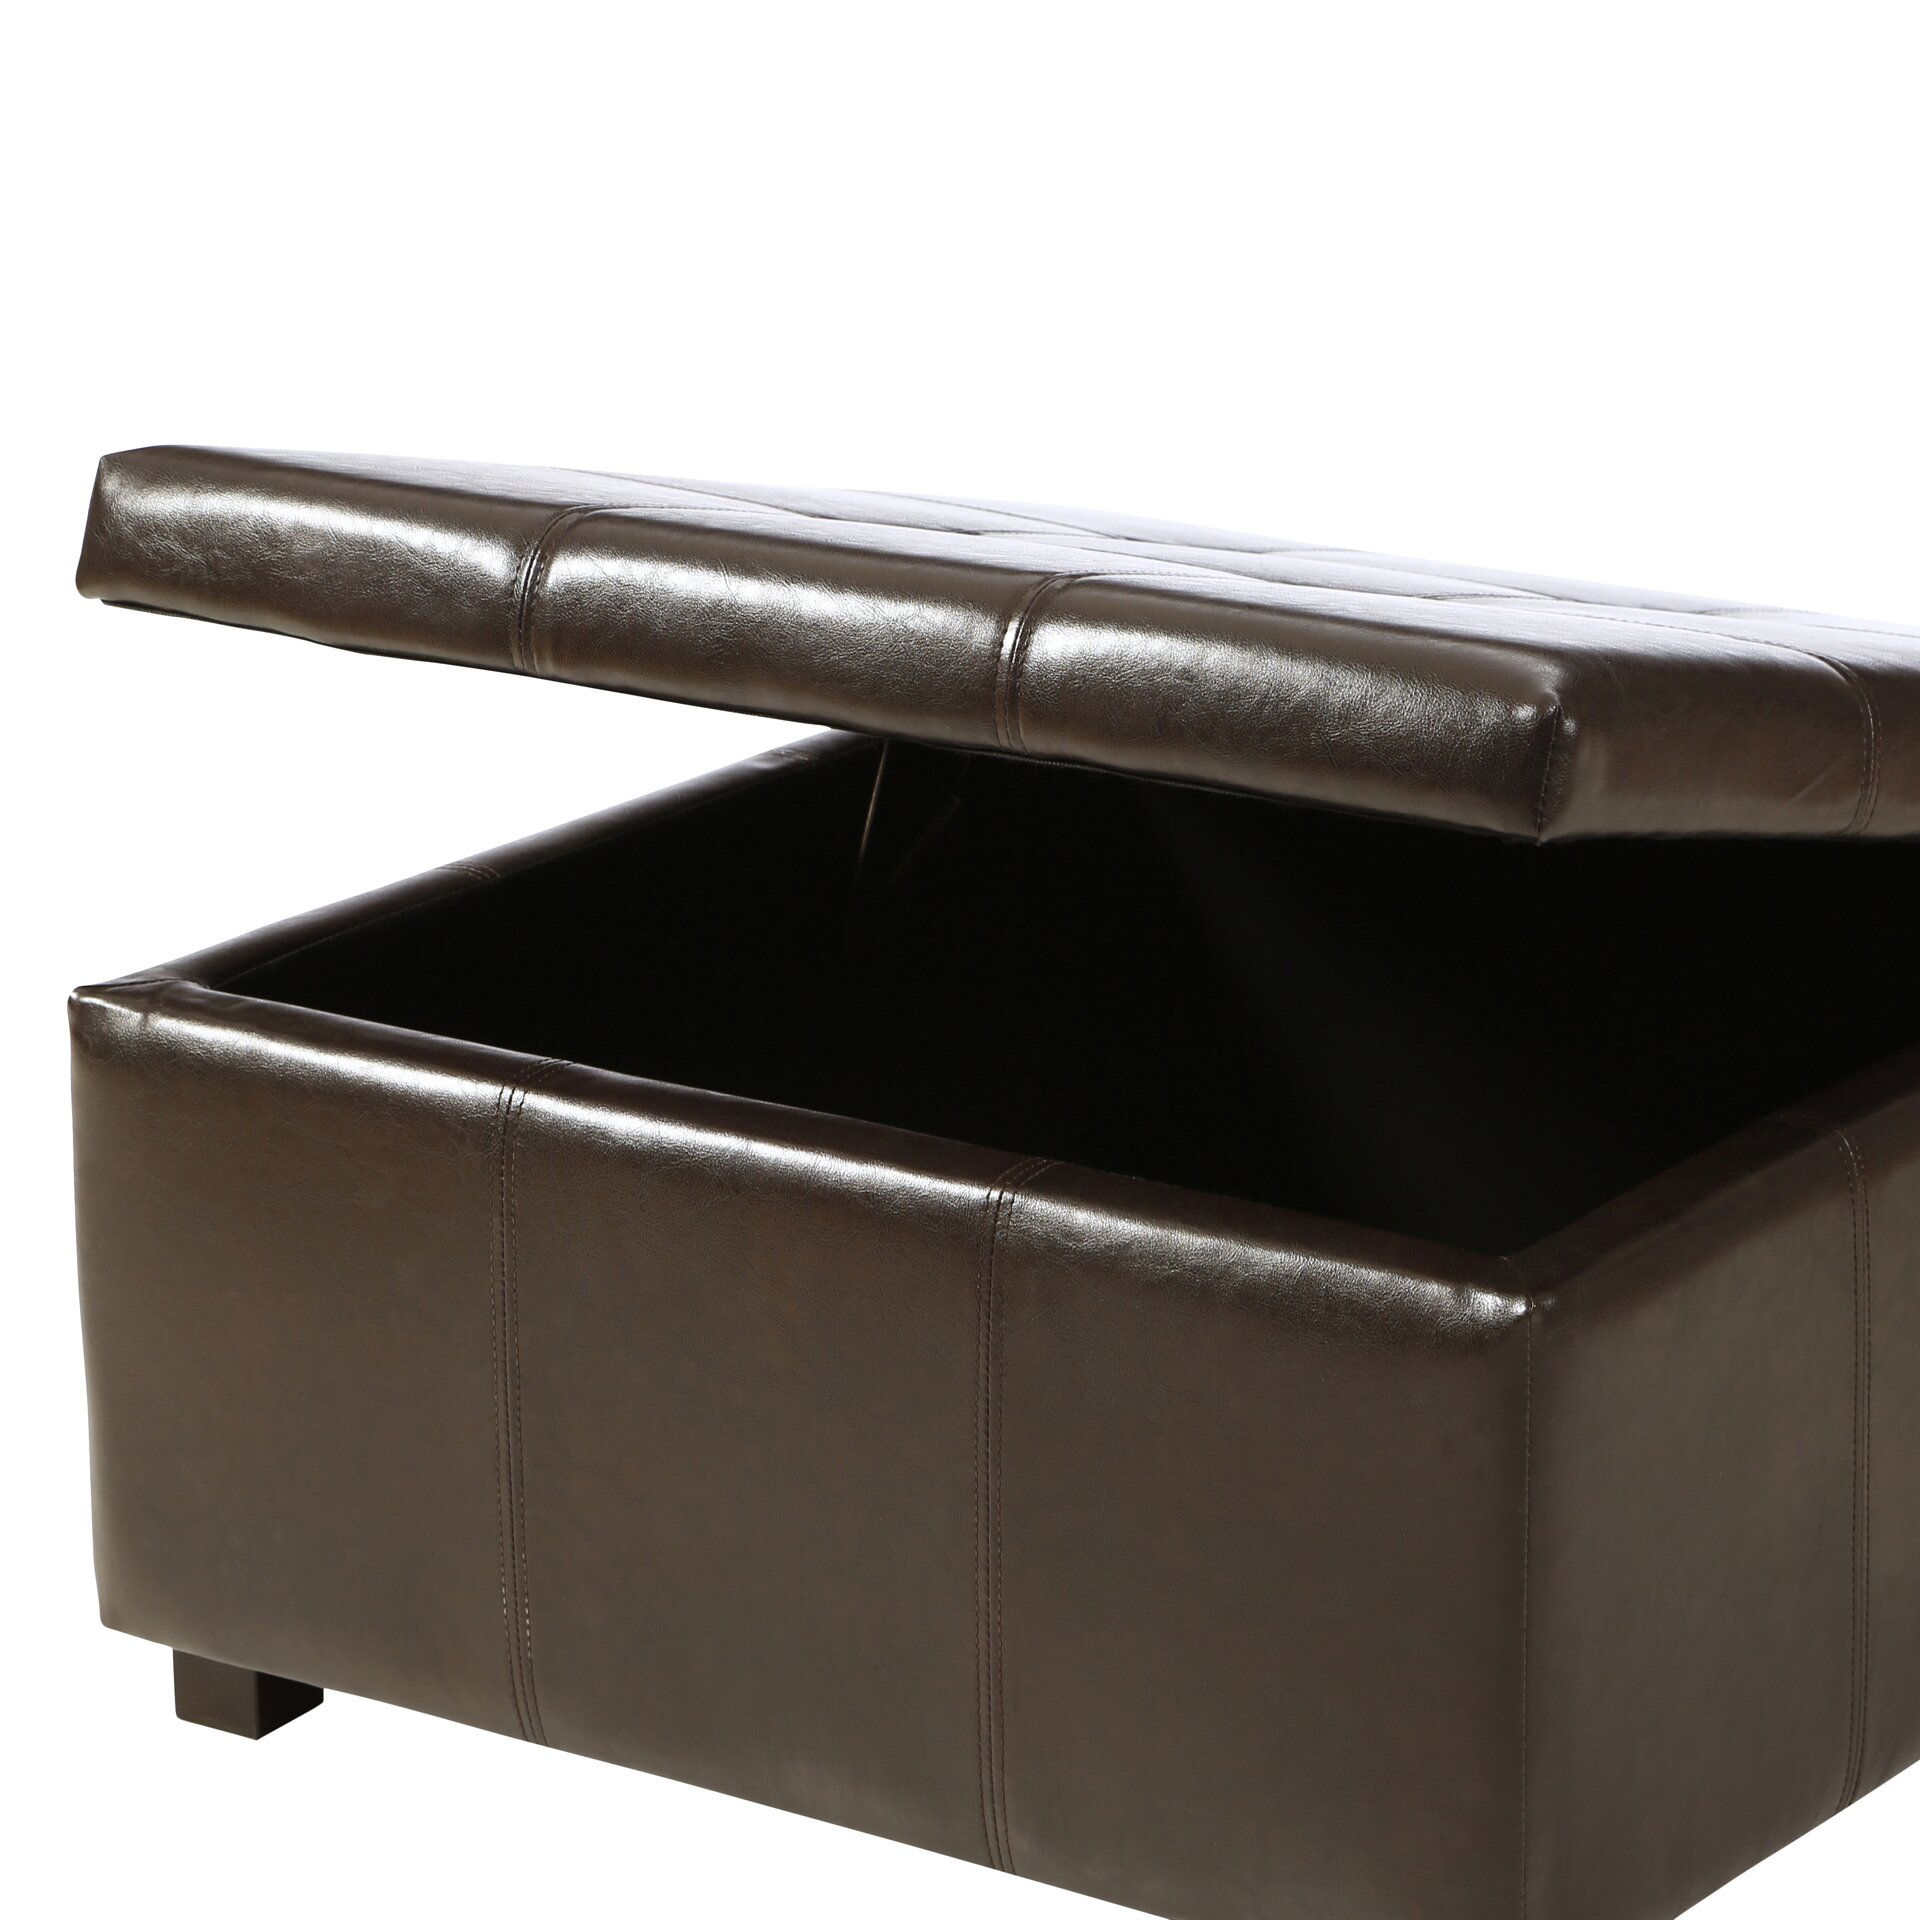 Three Posts Polycarp Storage Ottoman Reviews: Three Posts Ehlert Faux Leather Storage Ottoman & Reviews